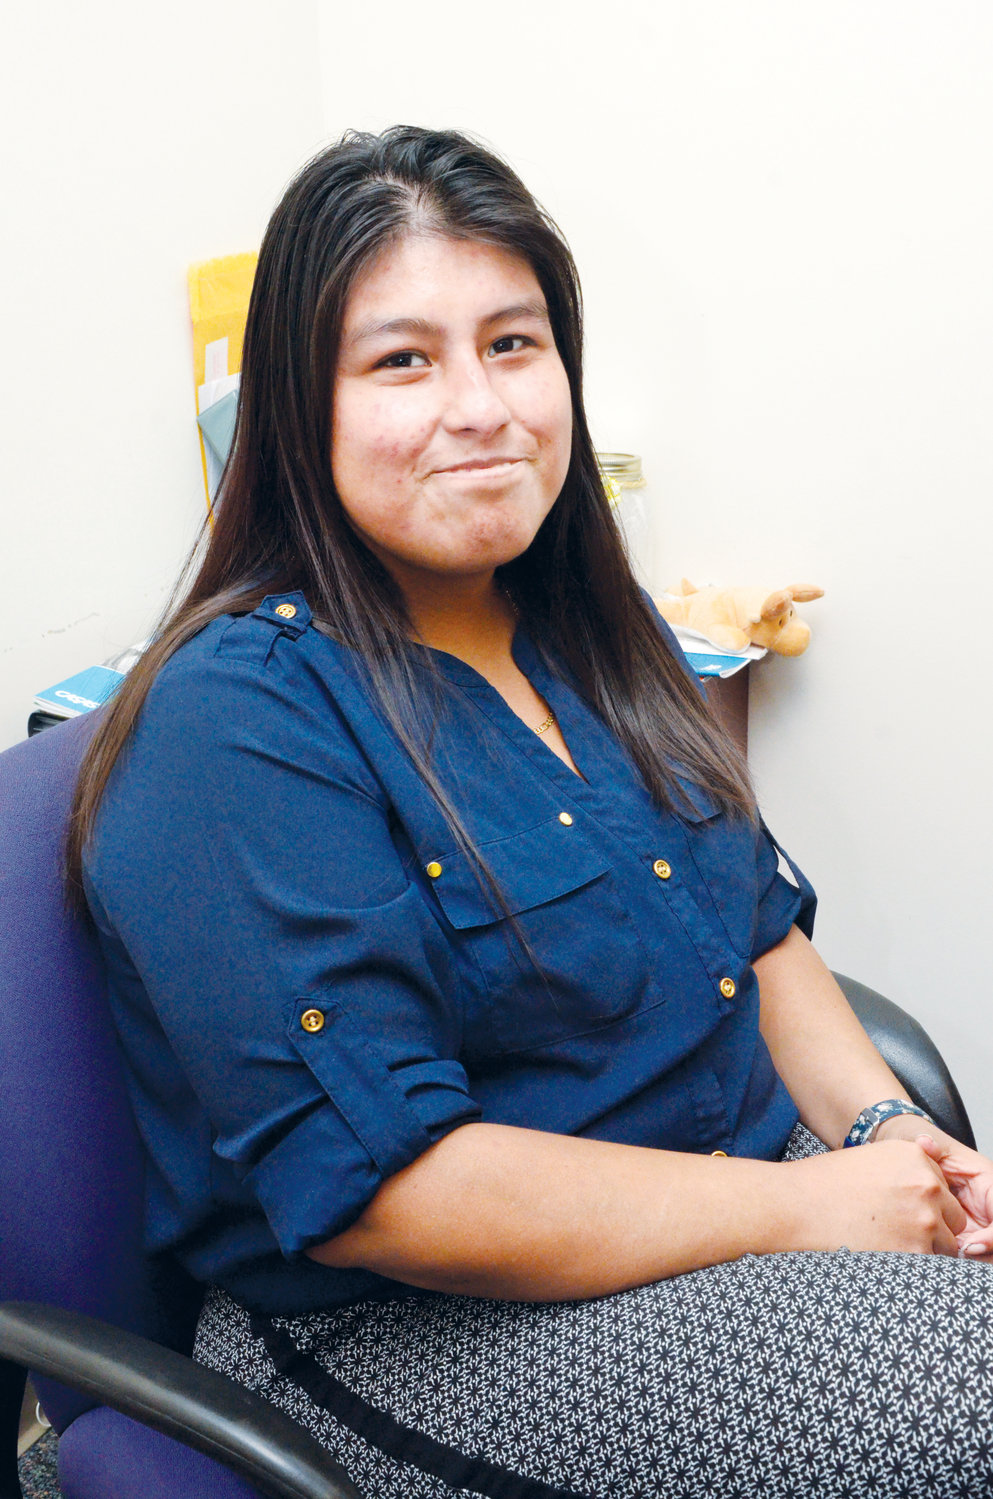 Leslie Ocampo coordinates the outreach program at the center, but also oversees the 'laptop-reward' program that rewards students with a free  laptop after achieving a planned long-term goal.